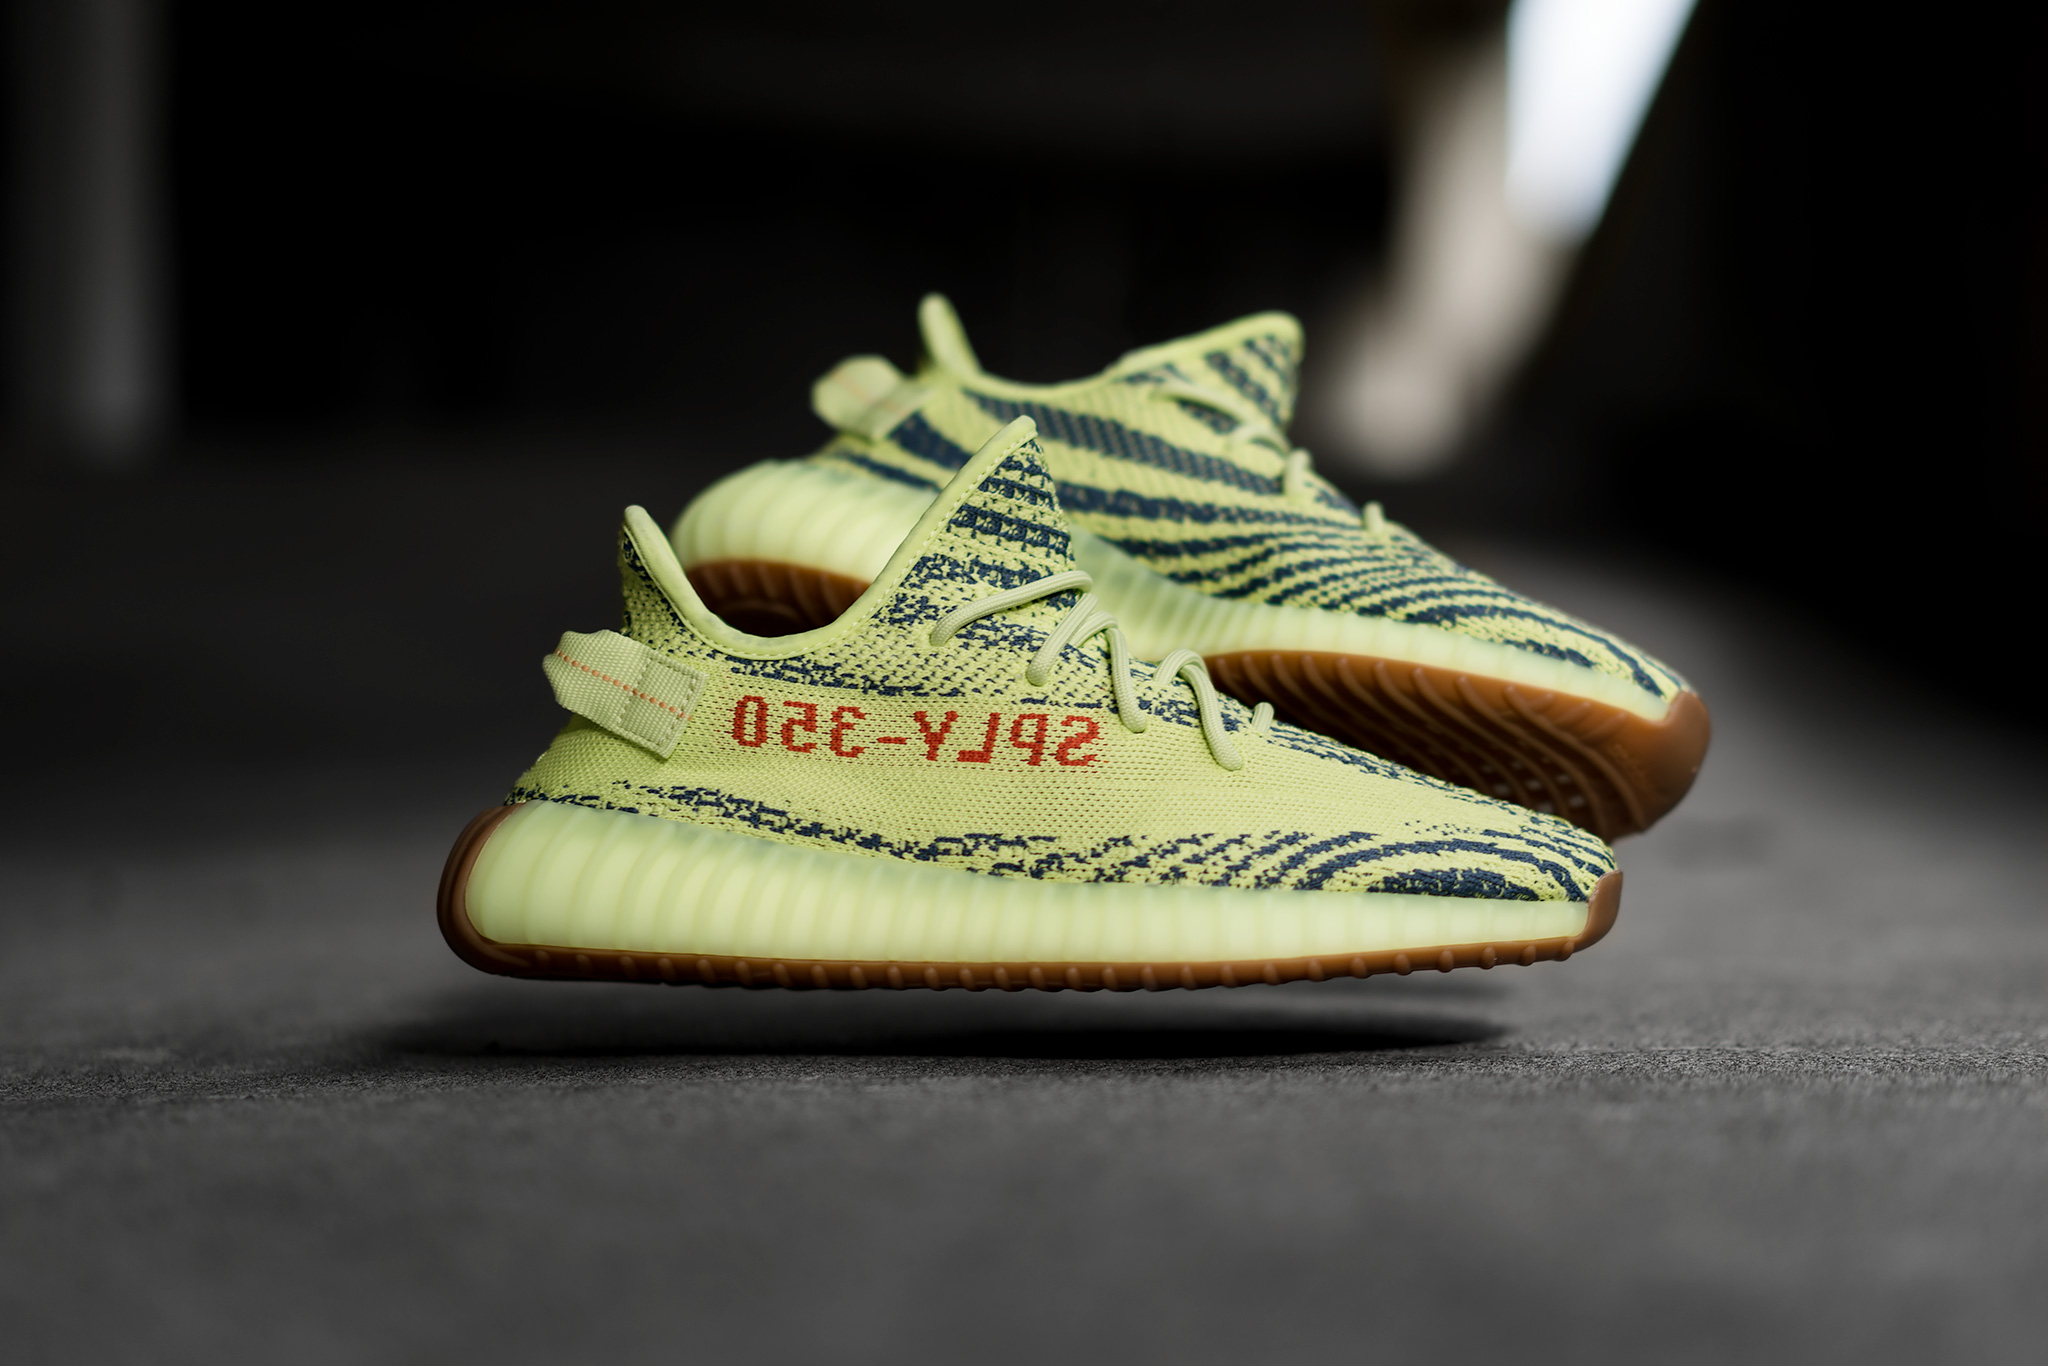 445af6a225180 The latest footwear offerings from Kanye West s partnership with adidas is  set to release at HAVEN on November 18th. Featuring the 3 stripes  proprietary ...